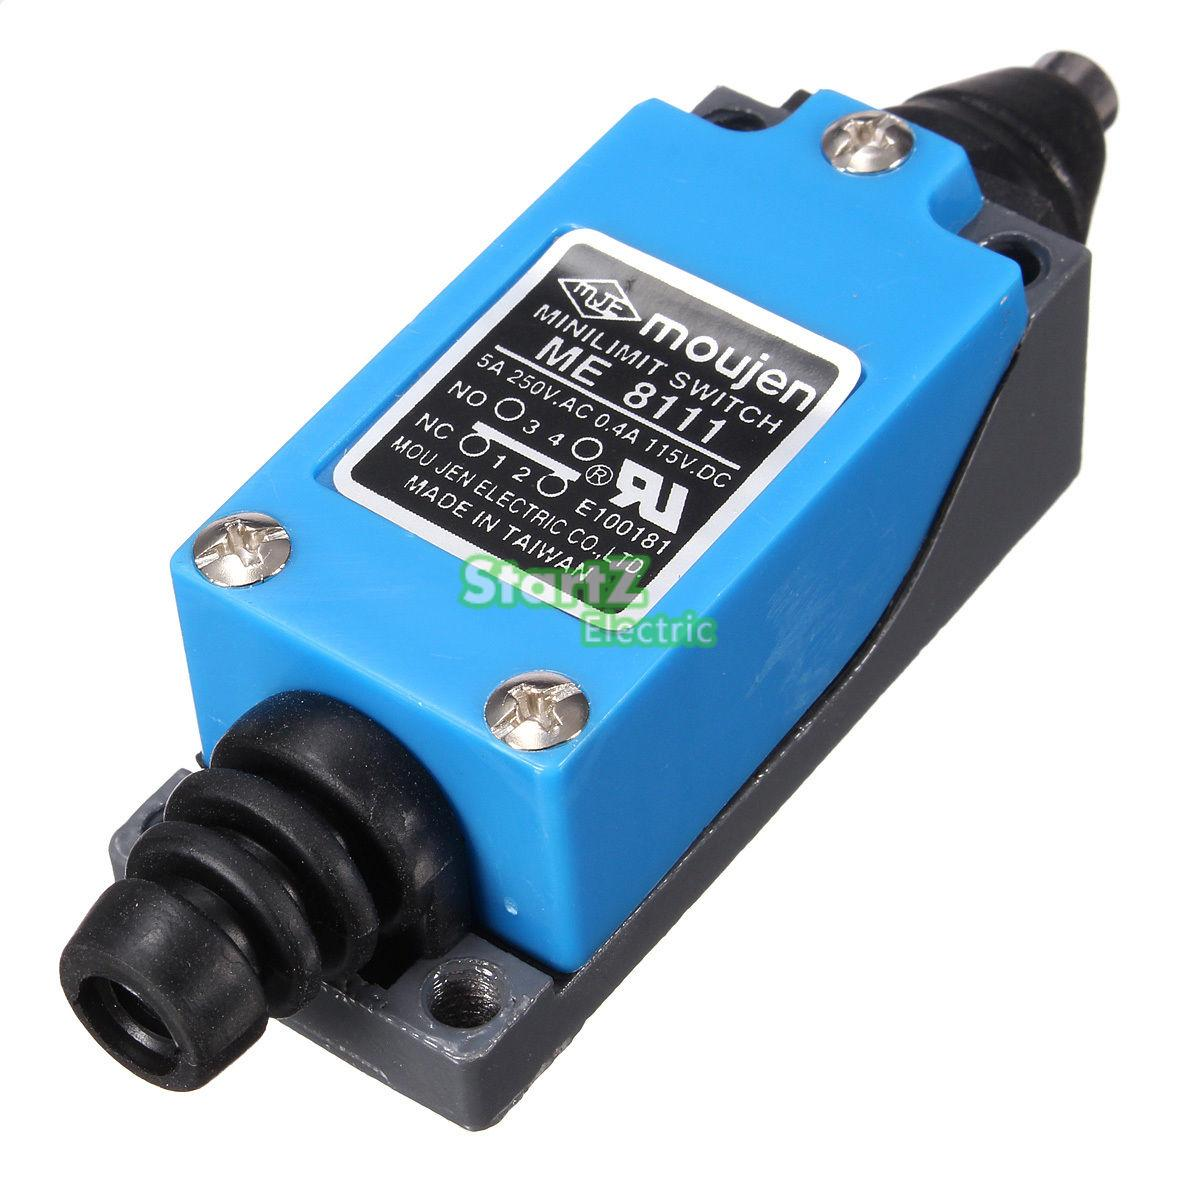 ME-8111 NO NC Momentary Pin Plunger Actuator Enclosed Limit Switch<br><br>Aliexpress